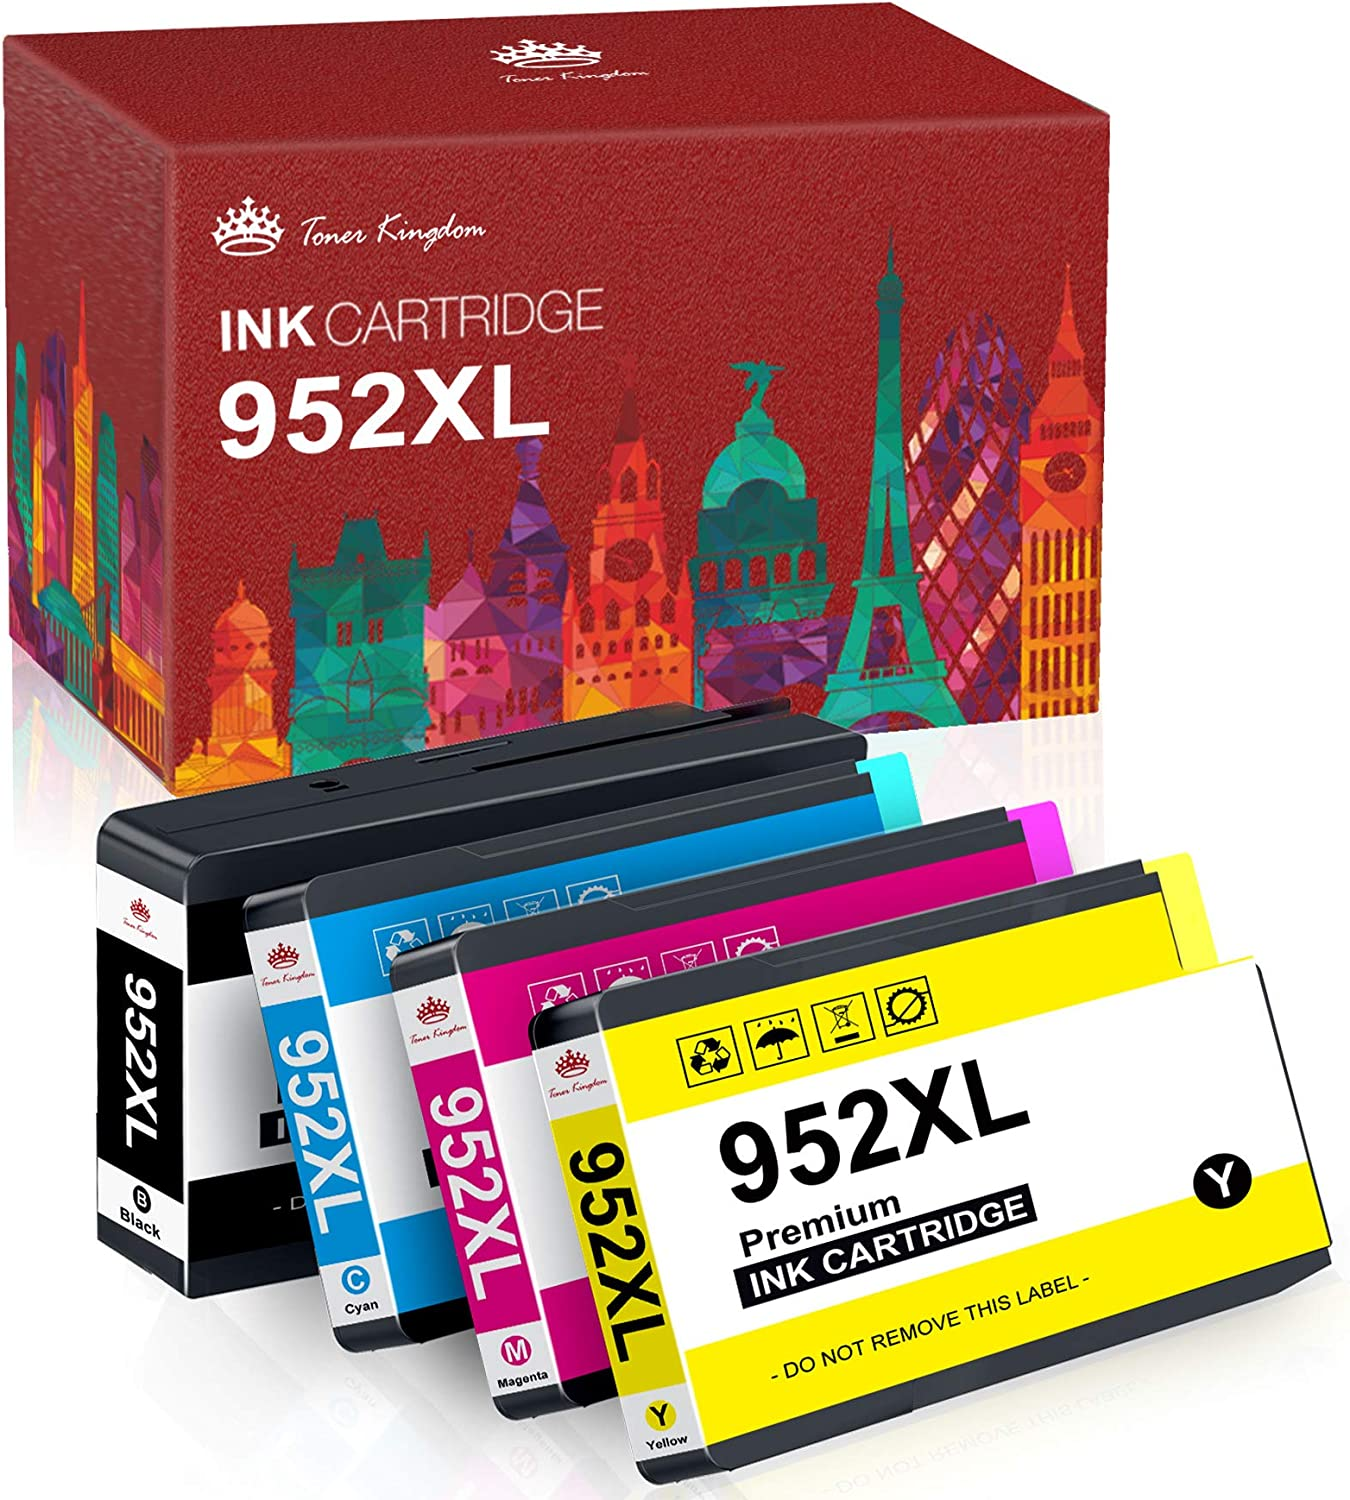 Toner Kingdom Remanufactured Ink Cartridge Replacement for HP 952 952XL to work with Officejet 8710 8720 8715 7740 7720 8740 8730 8702 8210 8216 printers (1 Cyan, 1 Magenta, 1 Yellow, 1 Black, 4-Pack)